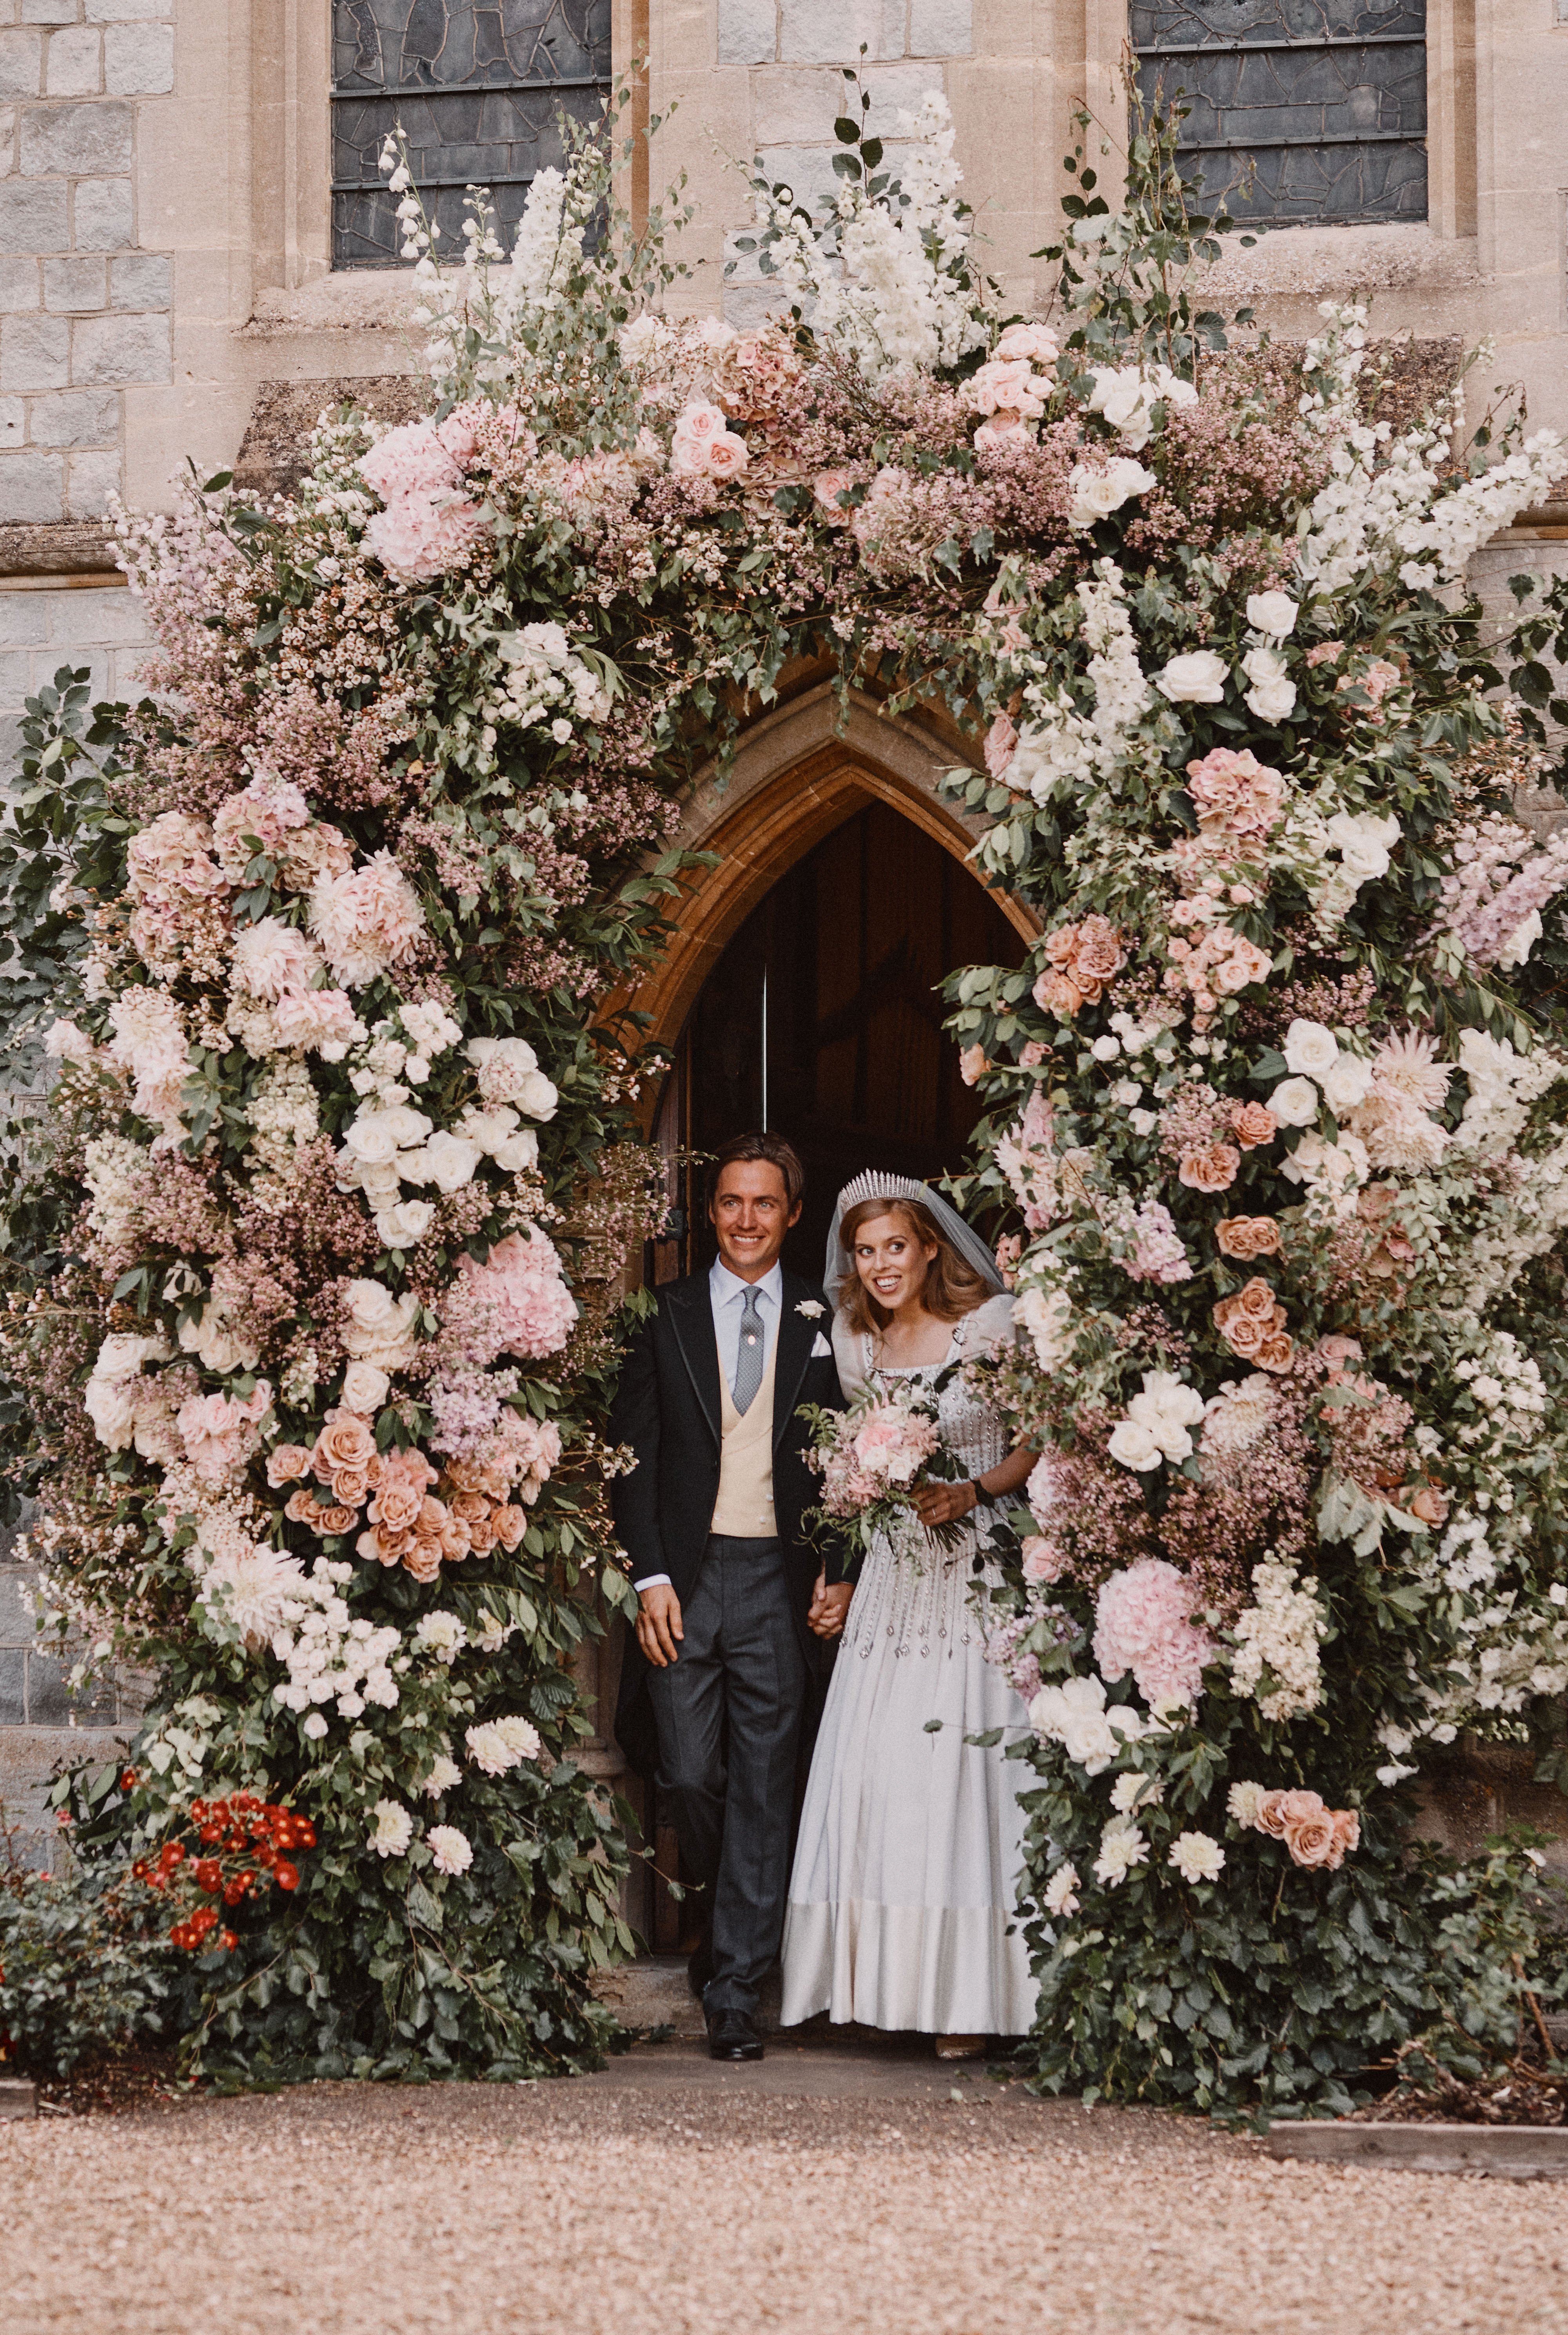 This official wedding photograph released by the Royal Communications of Princess Beatrice and Edoardo Mapelli Mozzi shows them leaving The Royal Chapel of All Saints at Royal Lodge, Windsor after their wedding on July 17th 2020 in Windsor, England. Issue date: Saturday July 18, 2020. | Source: Photo by Benjamin Wheeler - WPA Pool/Getty Images